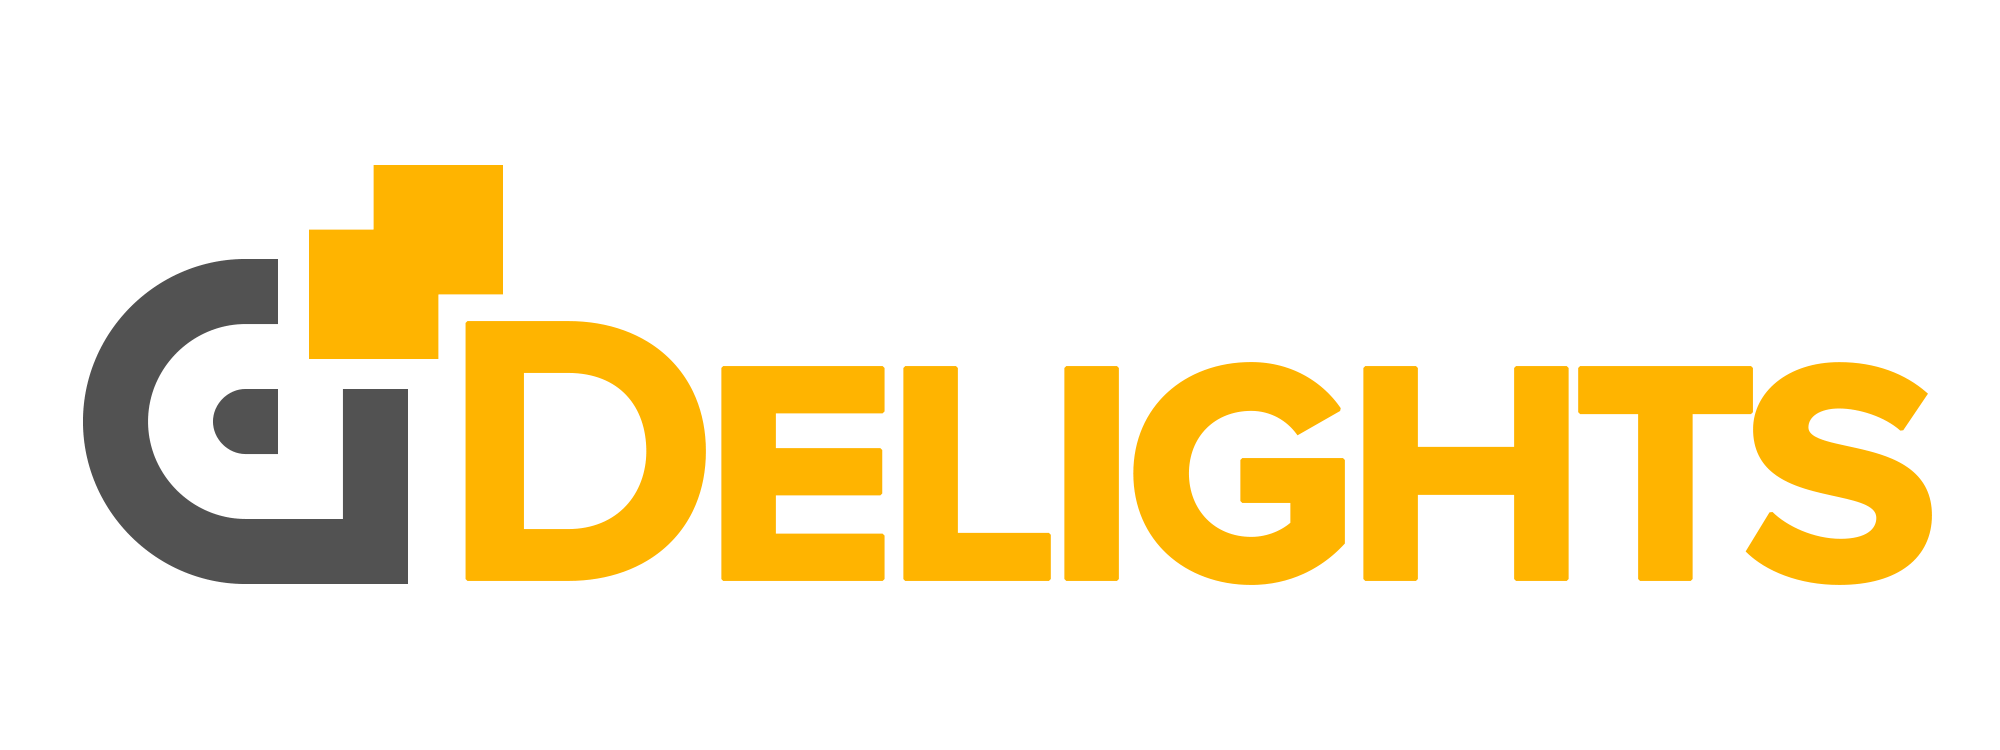 Delights Web Services